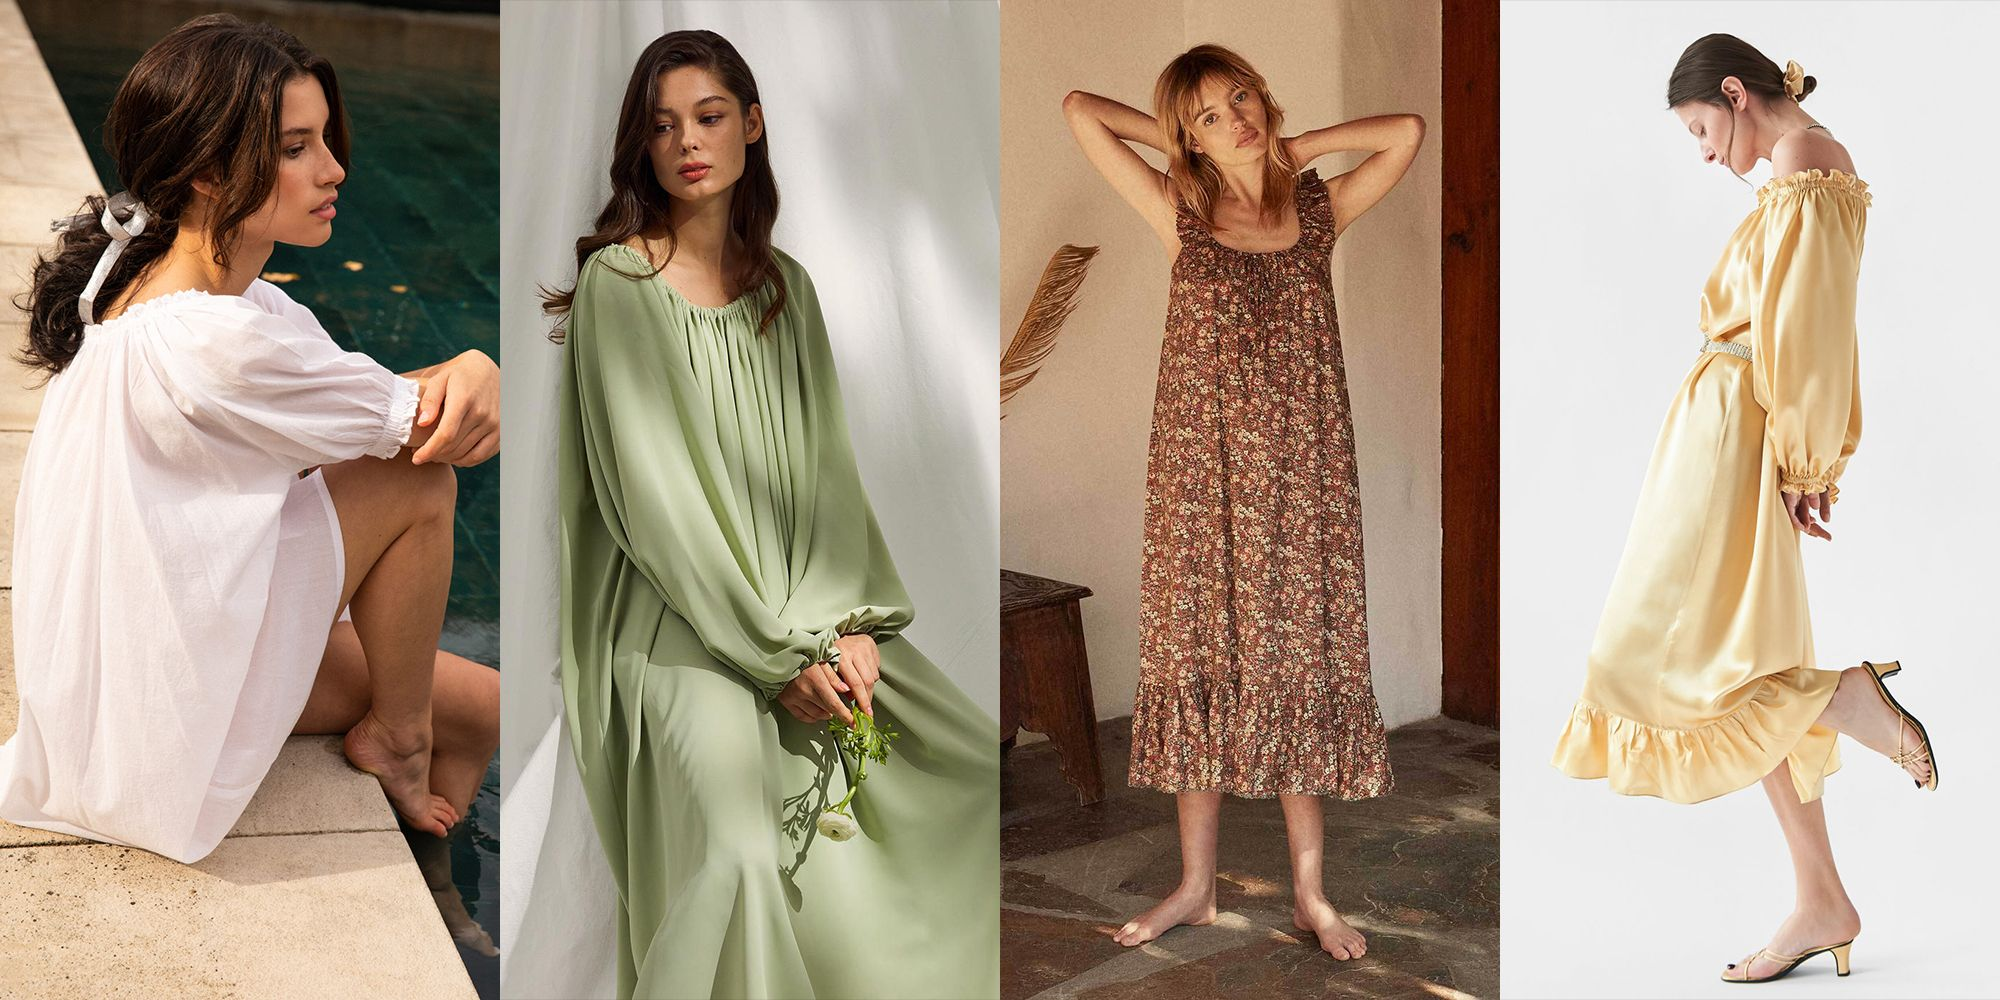 The House Dress Is the Ultimate in 2021 Loungewear